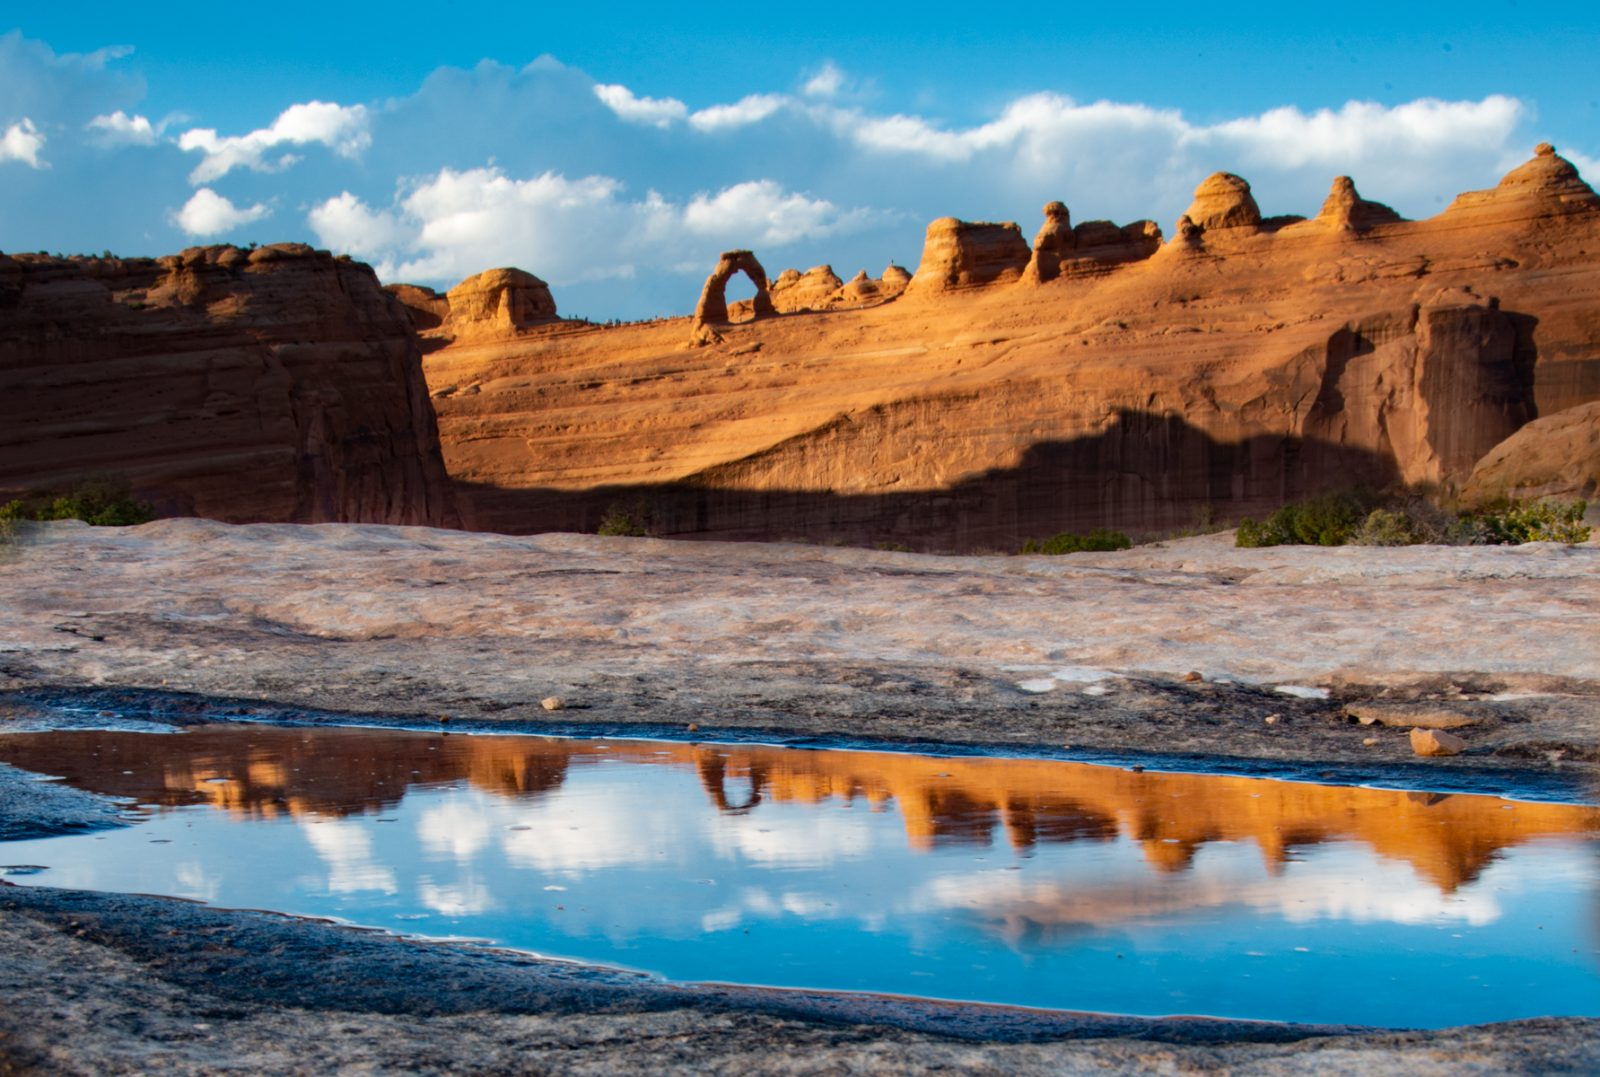 Pothole reflection of Delicate Arch